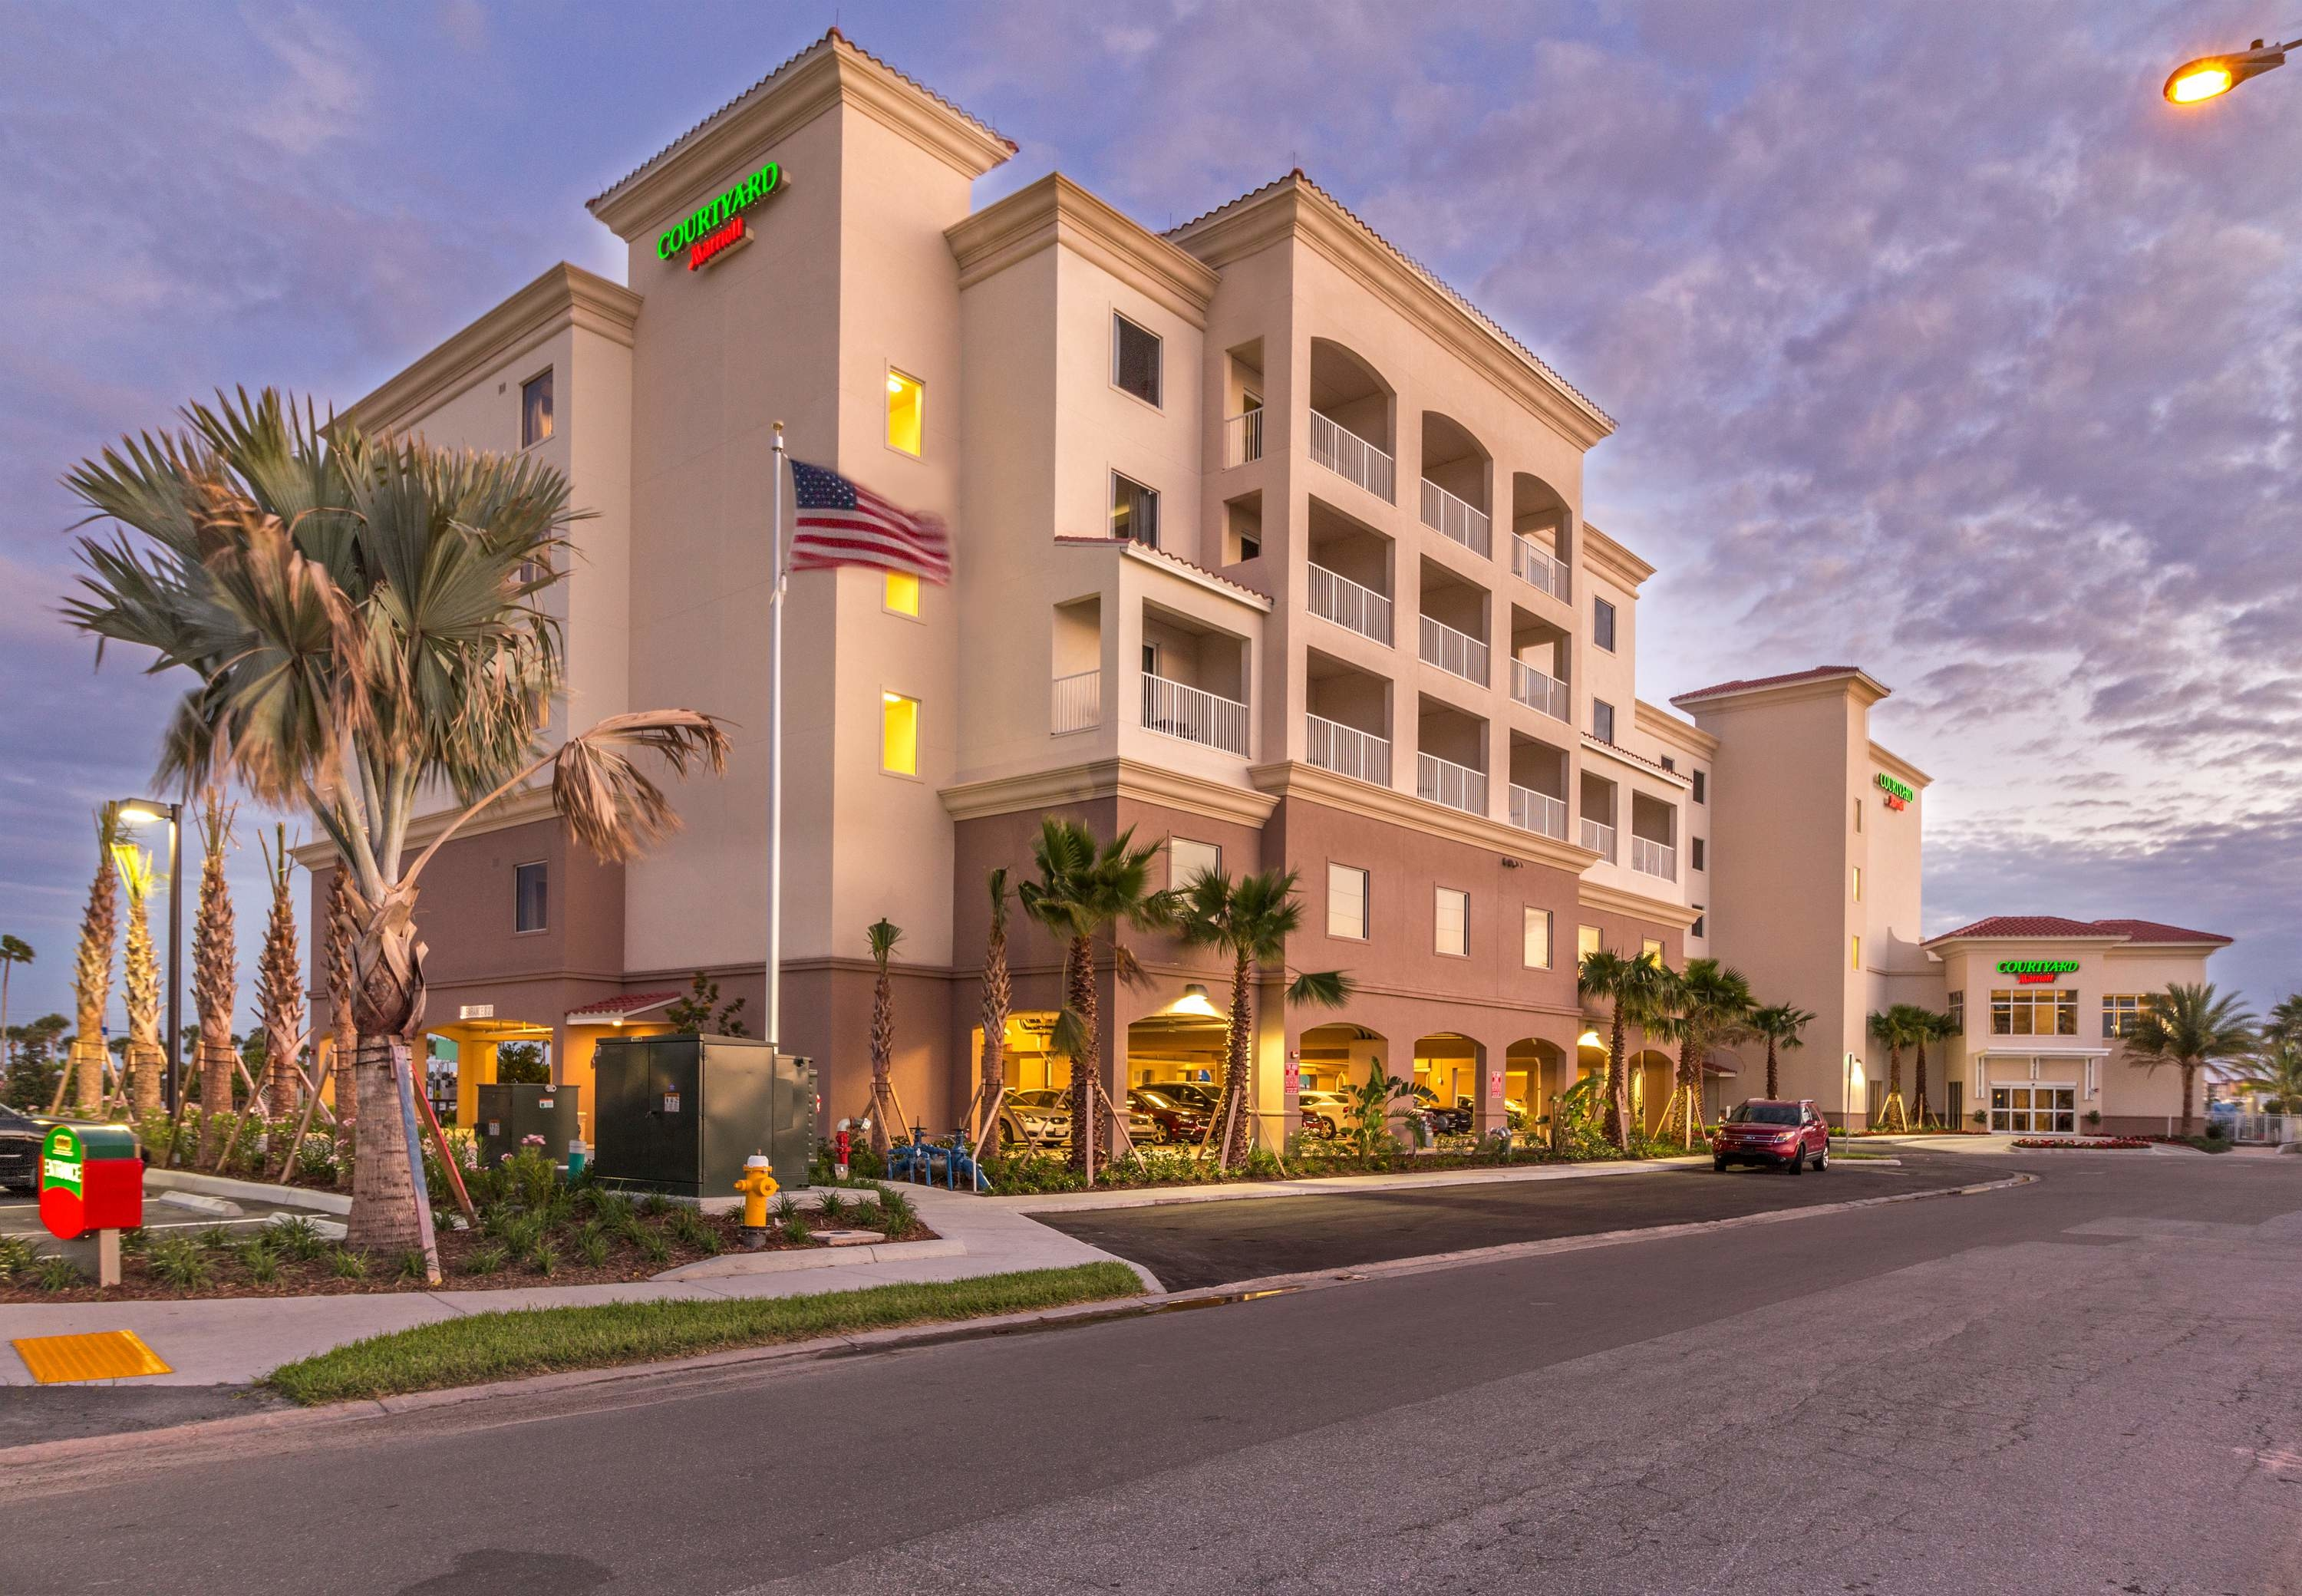 Courtyard by Marriott St. Petersburg Clearwater/Madeira Beach image 8